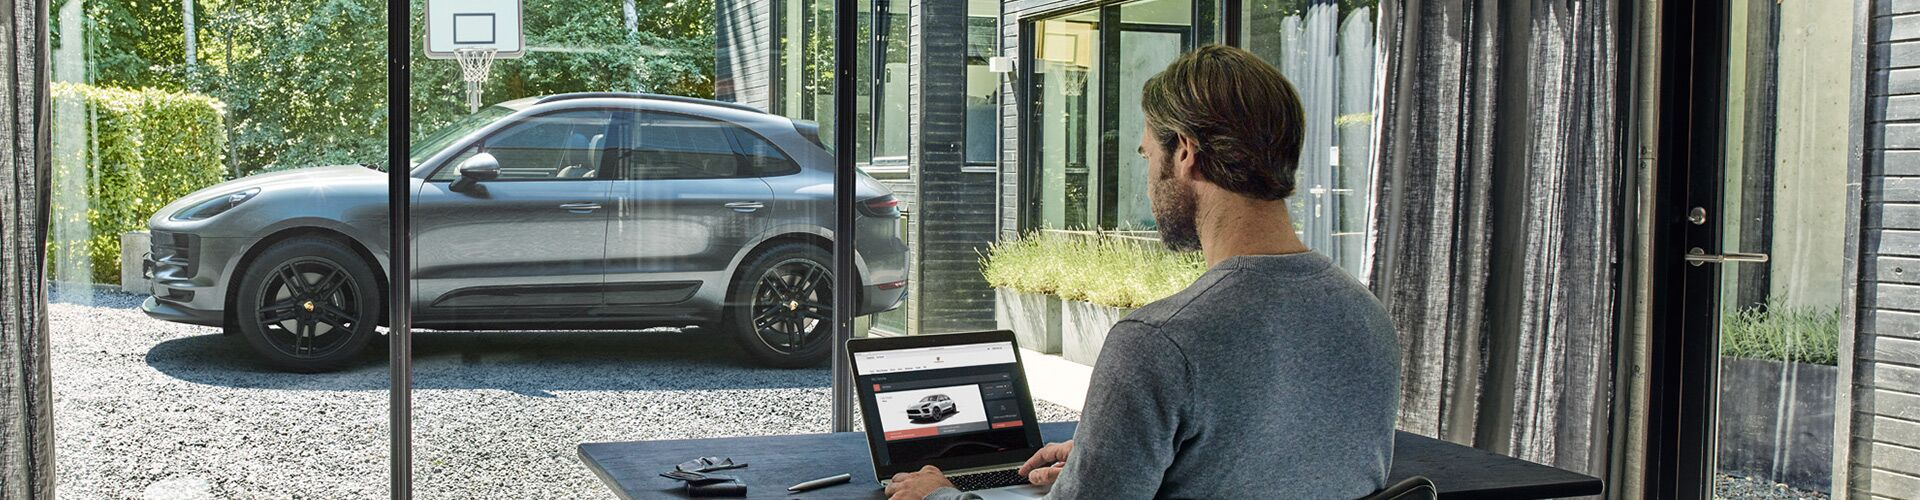 Man using laptop and a Porsche vehicle outside of the building